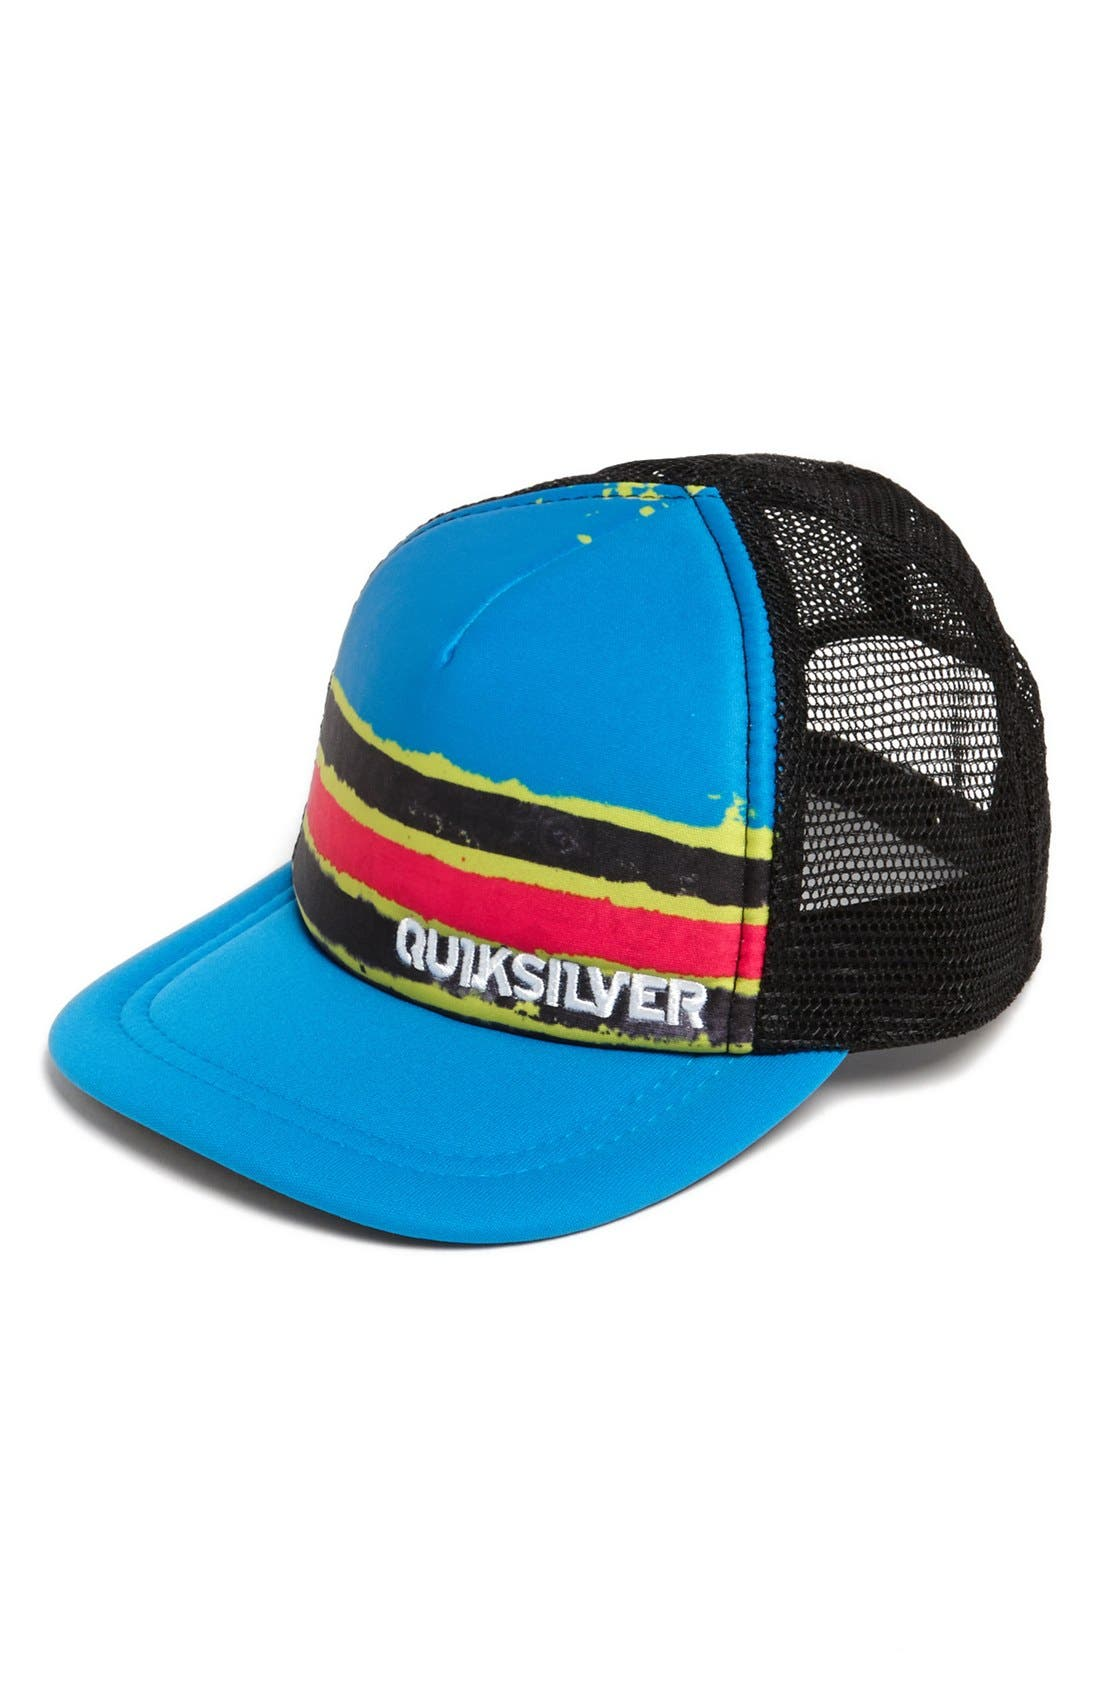 Main Image - Quiksilver 'Boards' Trucker Hat (Toddler Boys)